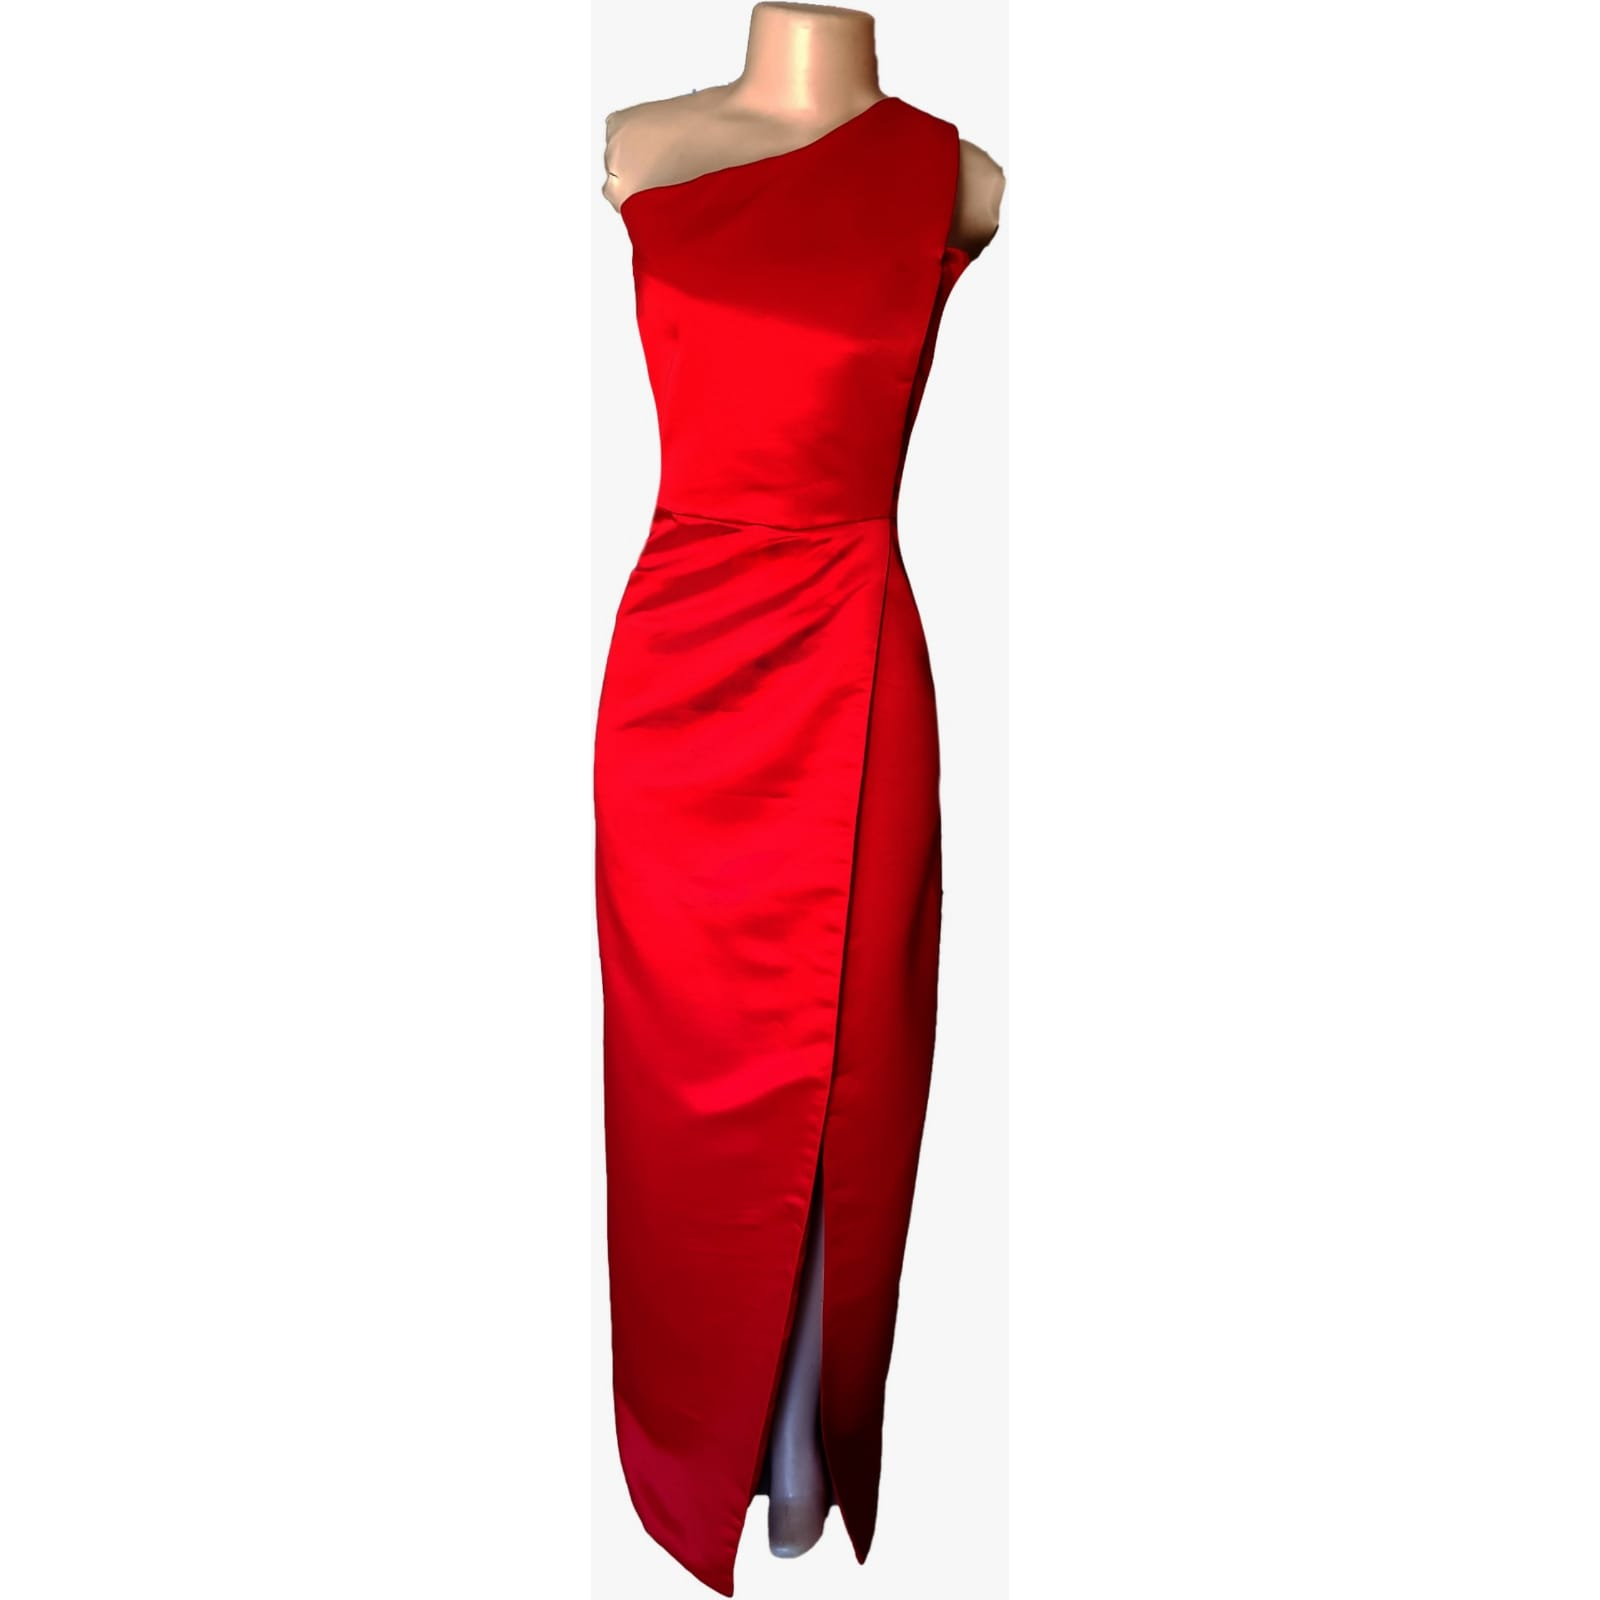 Bright red duchess satin single shoulder prom dress 6 bright red duchess satin single shoulder prom dress. Straight fit with a crossed slit.